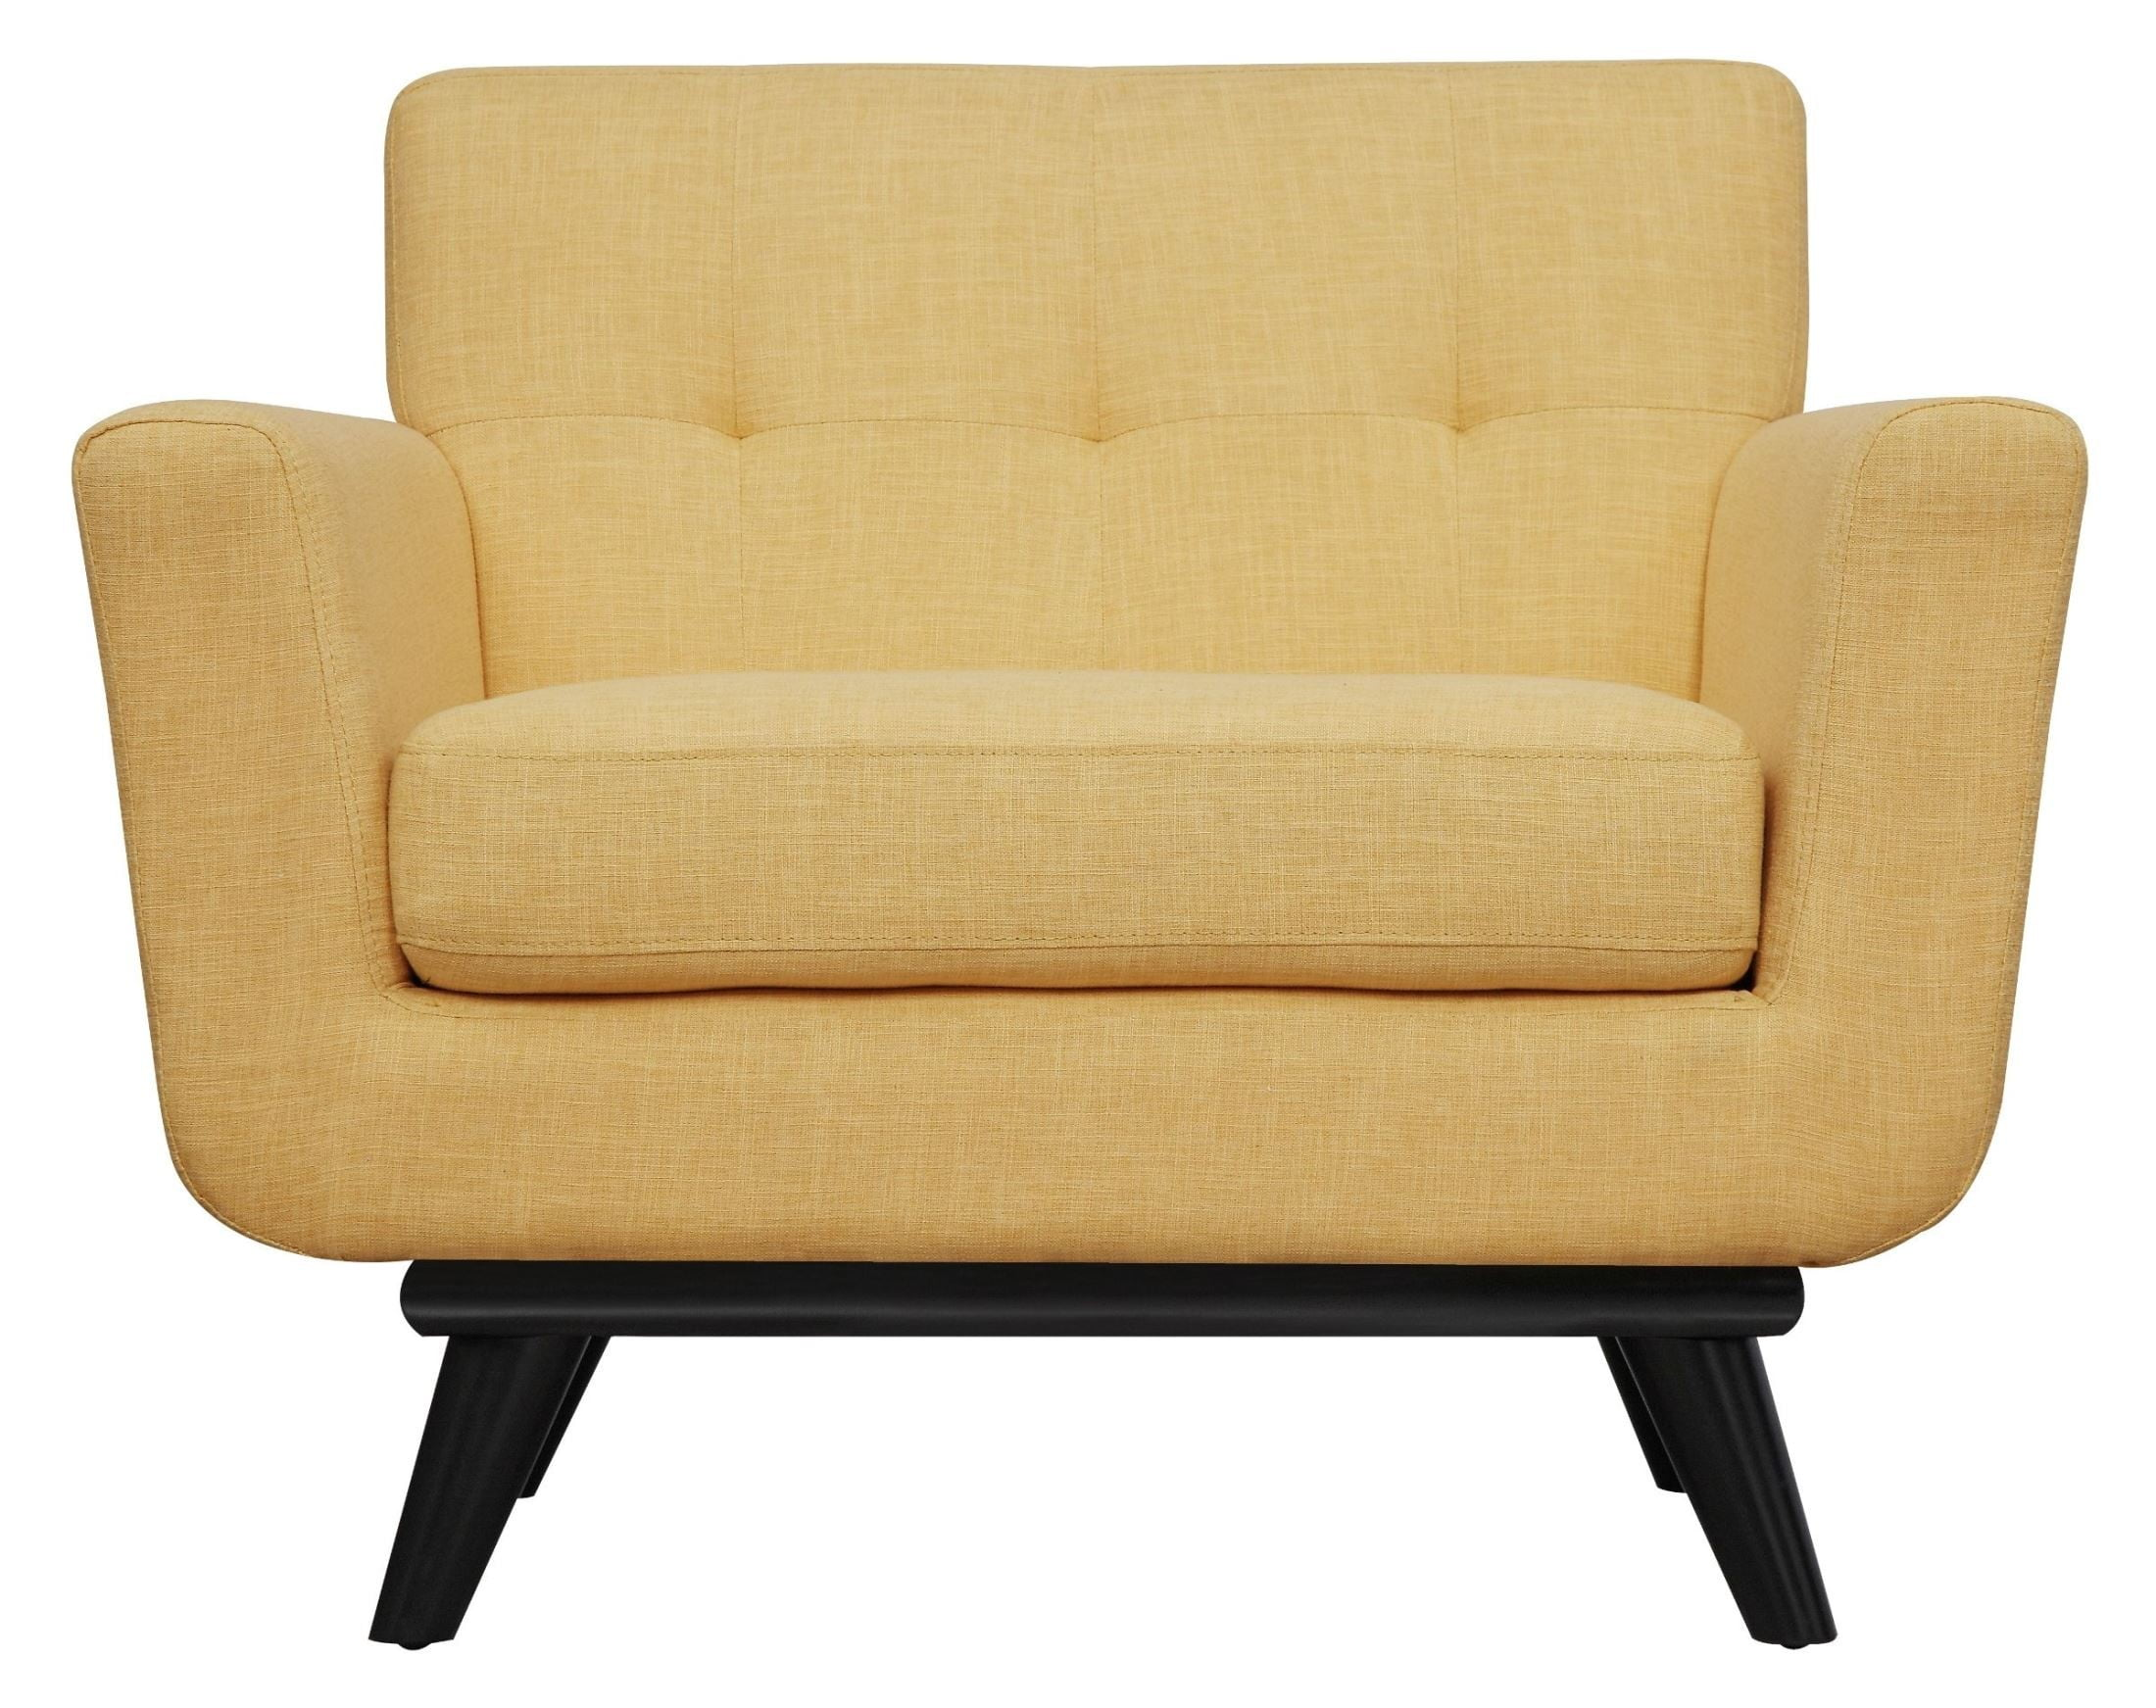 james mustard yellow linen chair from tov a55 coleman furniture. Black Bedroom Furniture Sets. Home Design Ideas